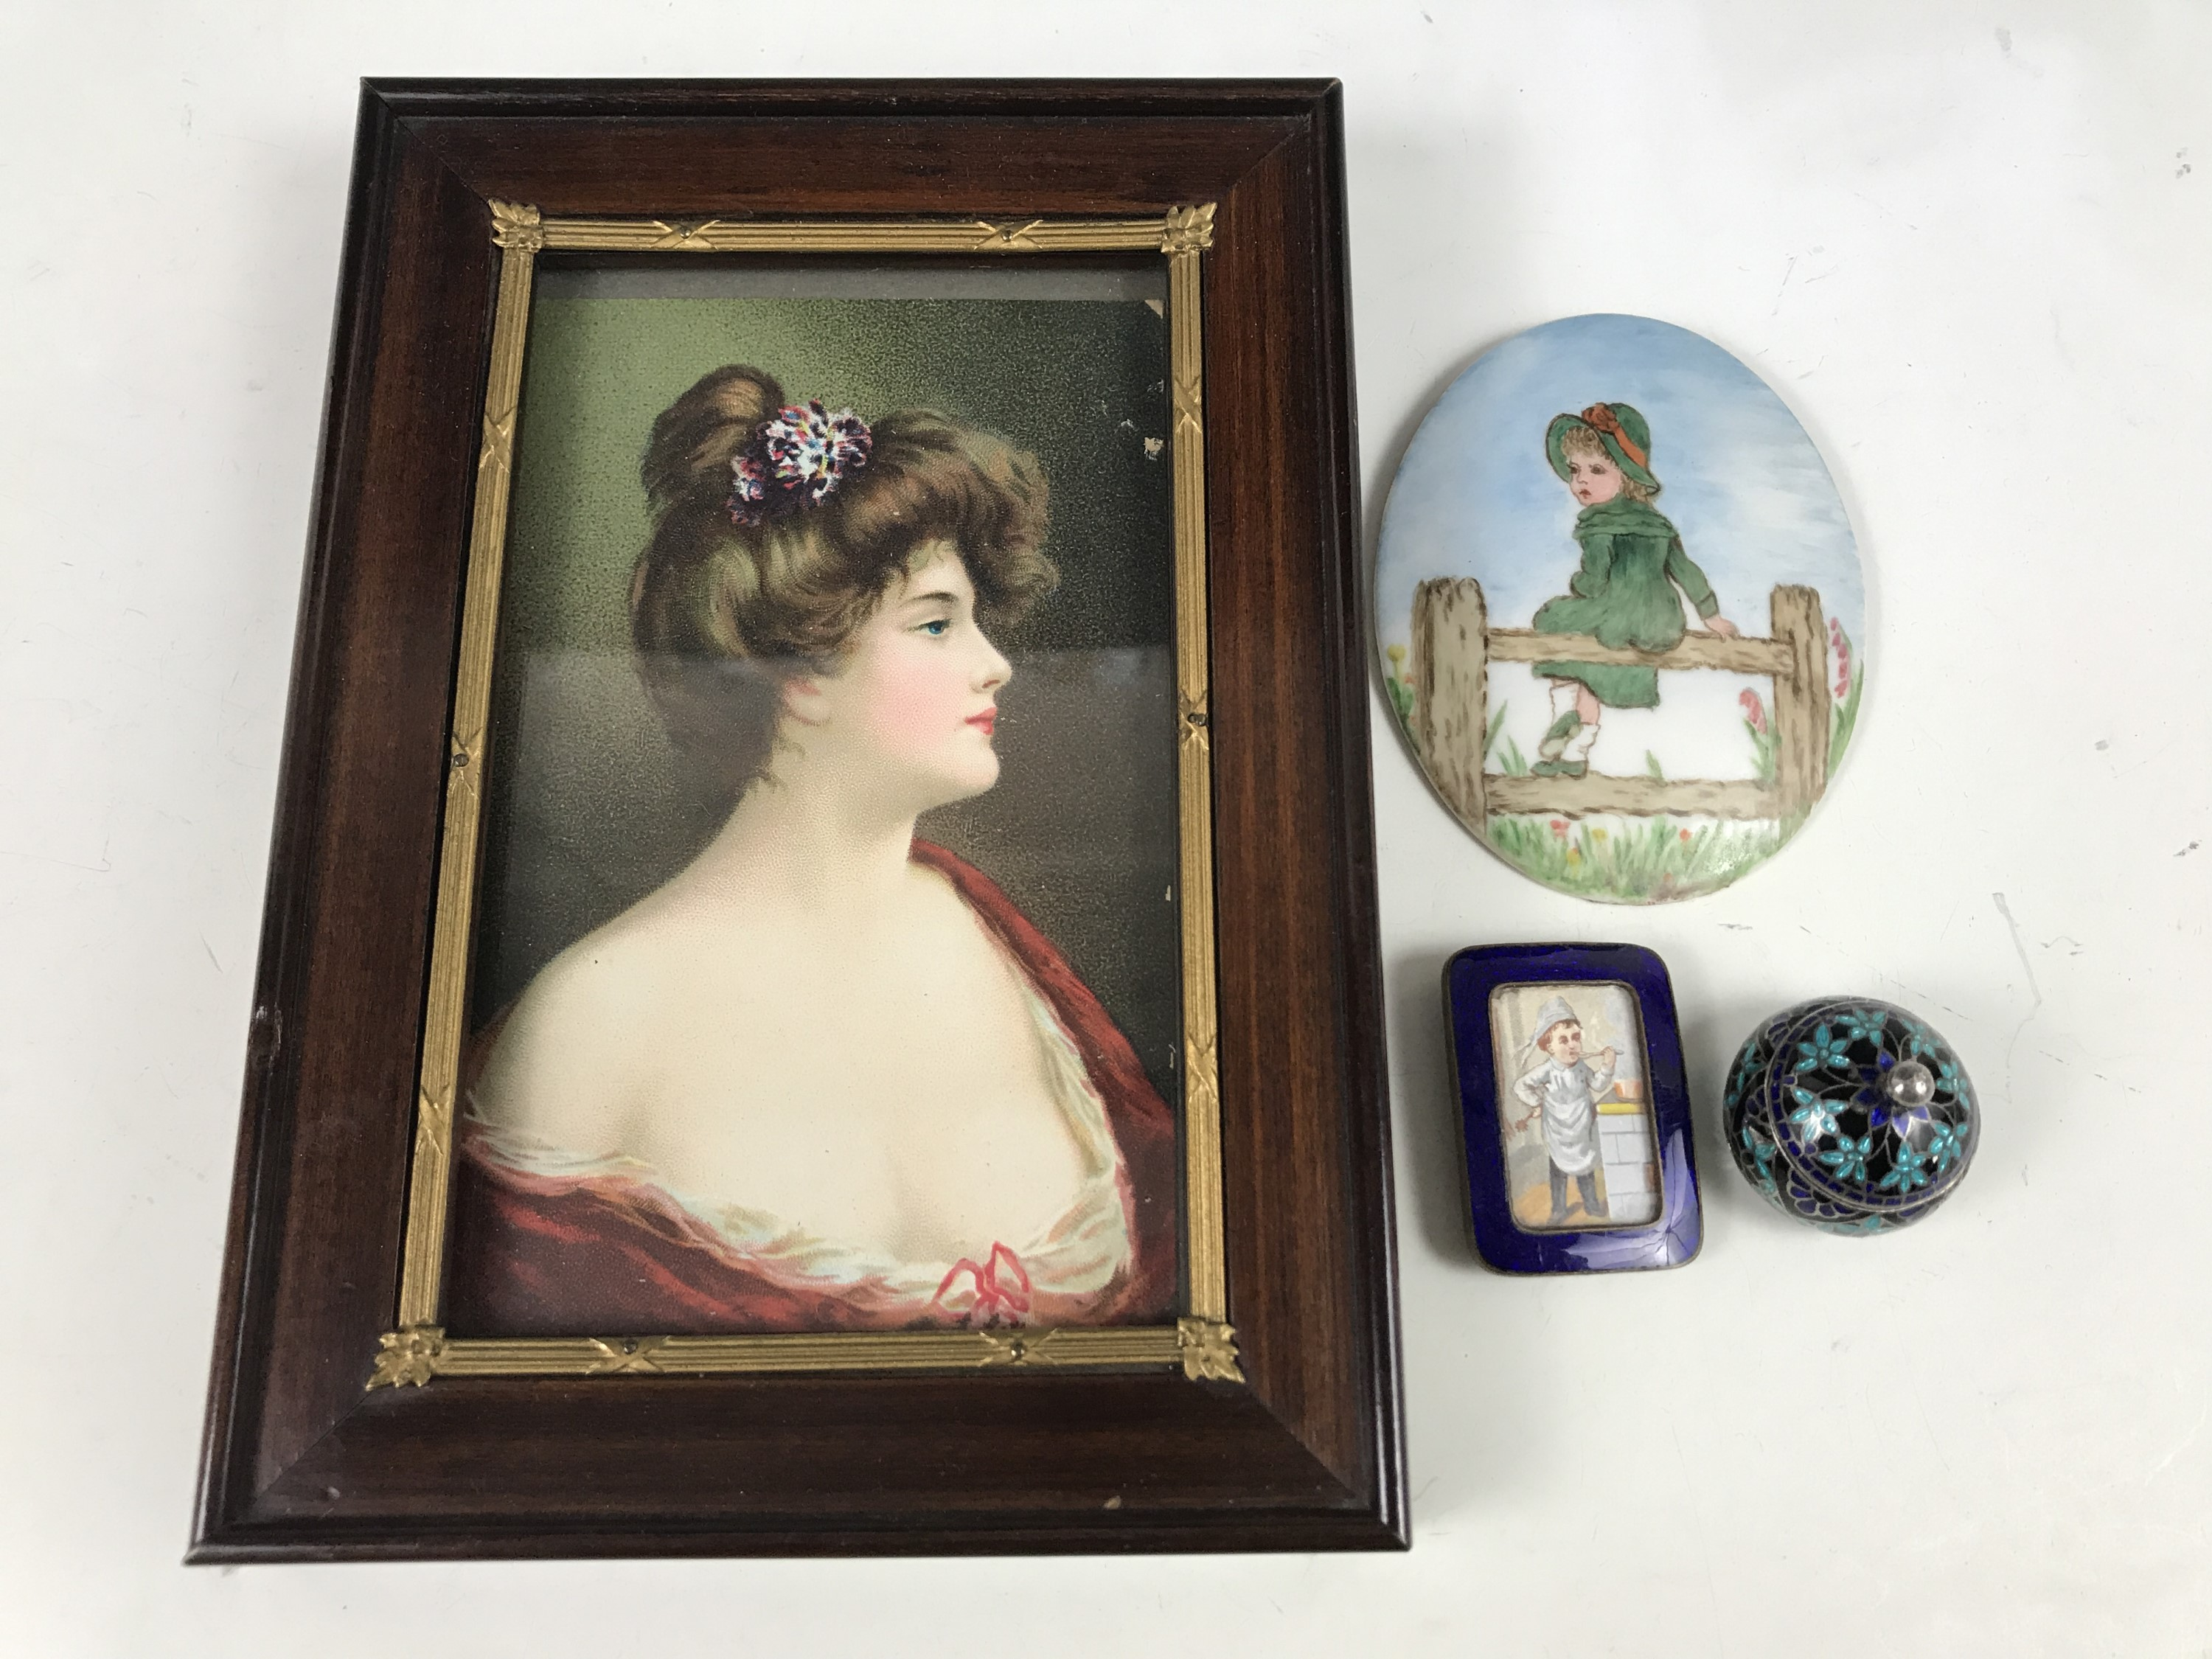 Lot 4 - An early 20th Century framed print depicting a sentimental lady together with a hand painted plaque,